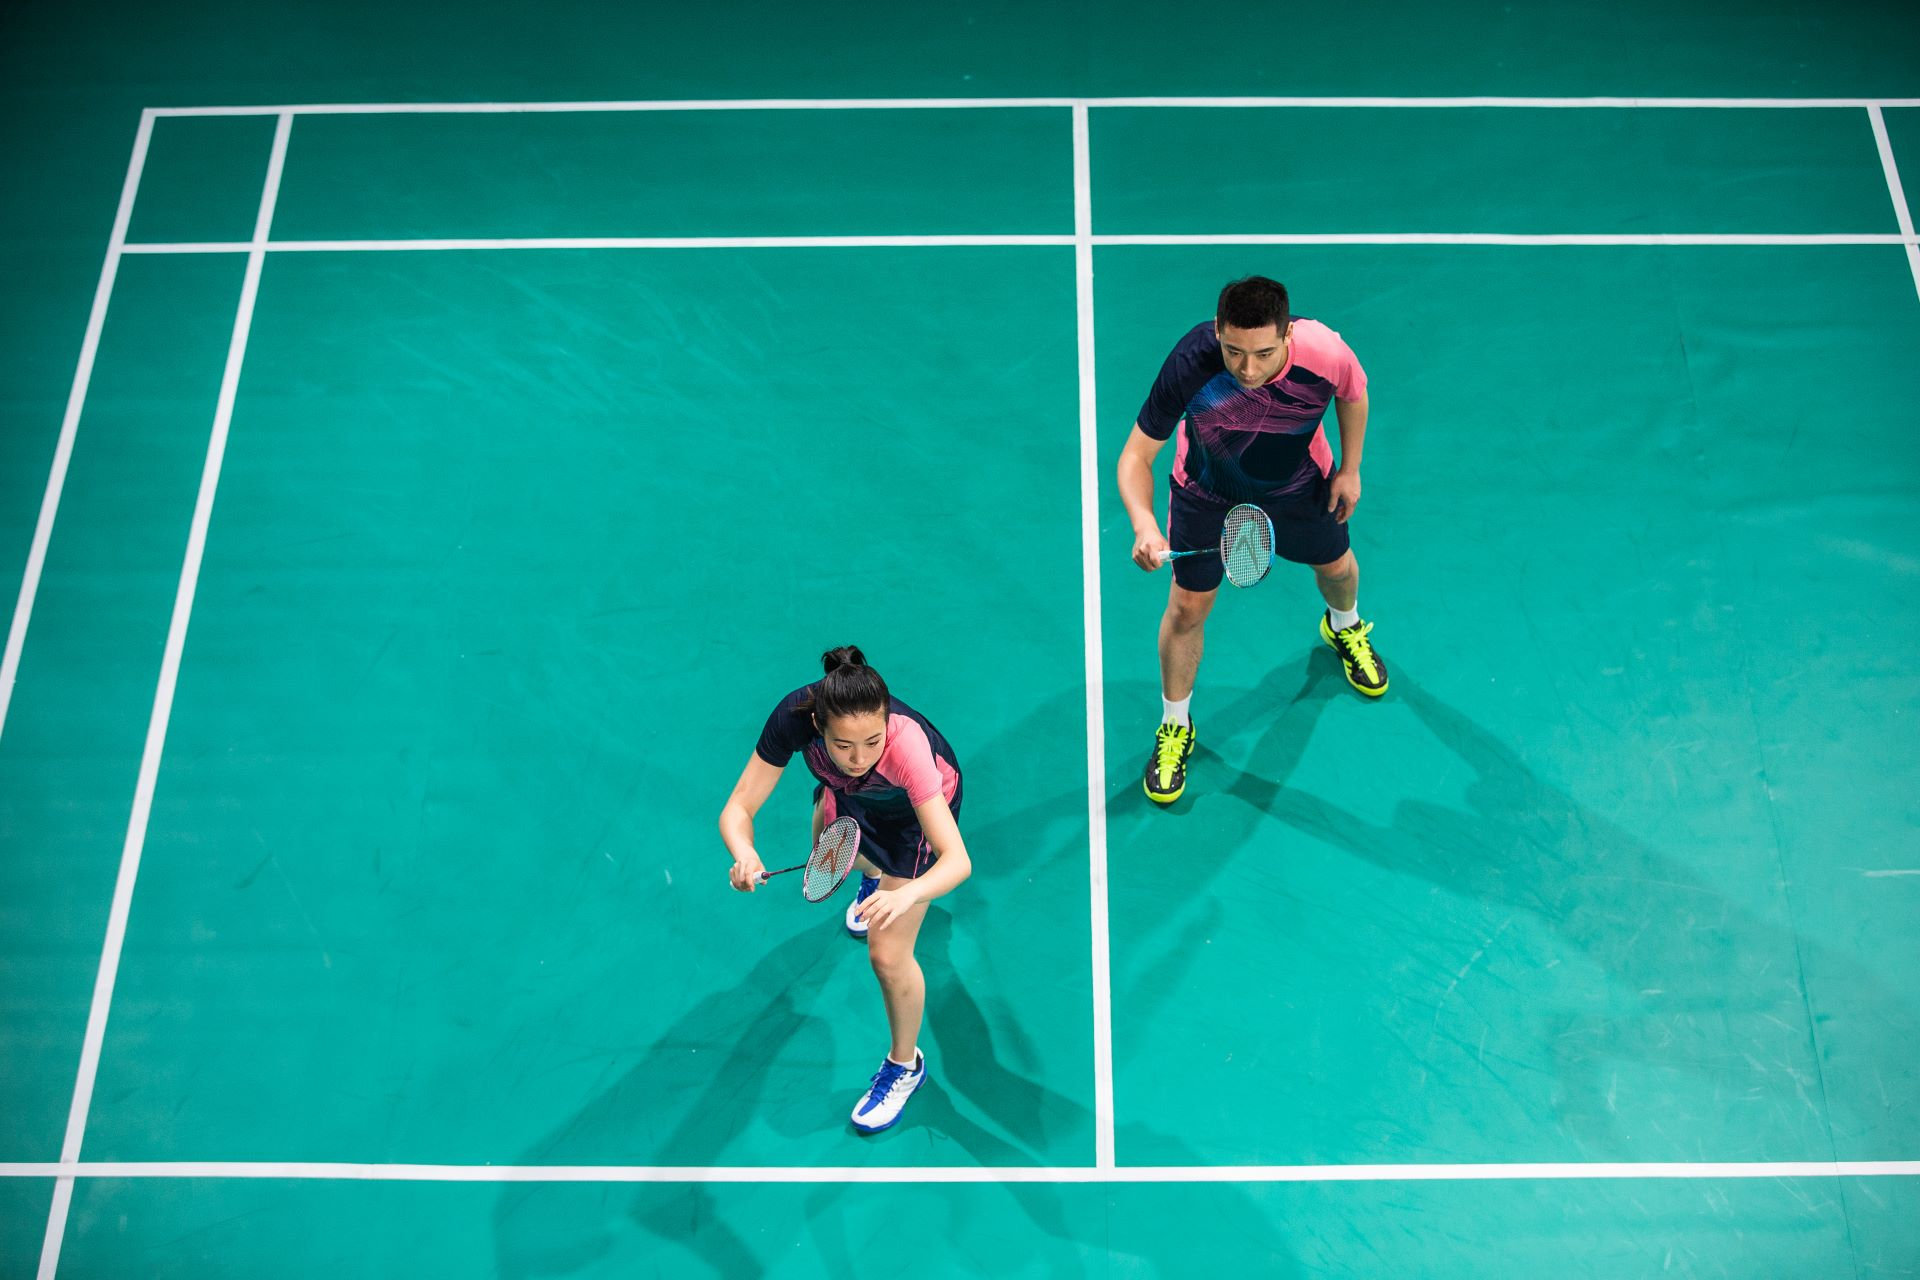 Learn Your Way Around A Badminton Court